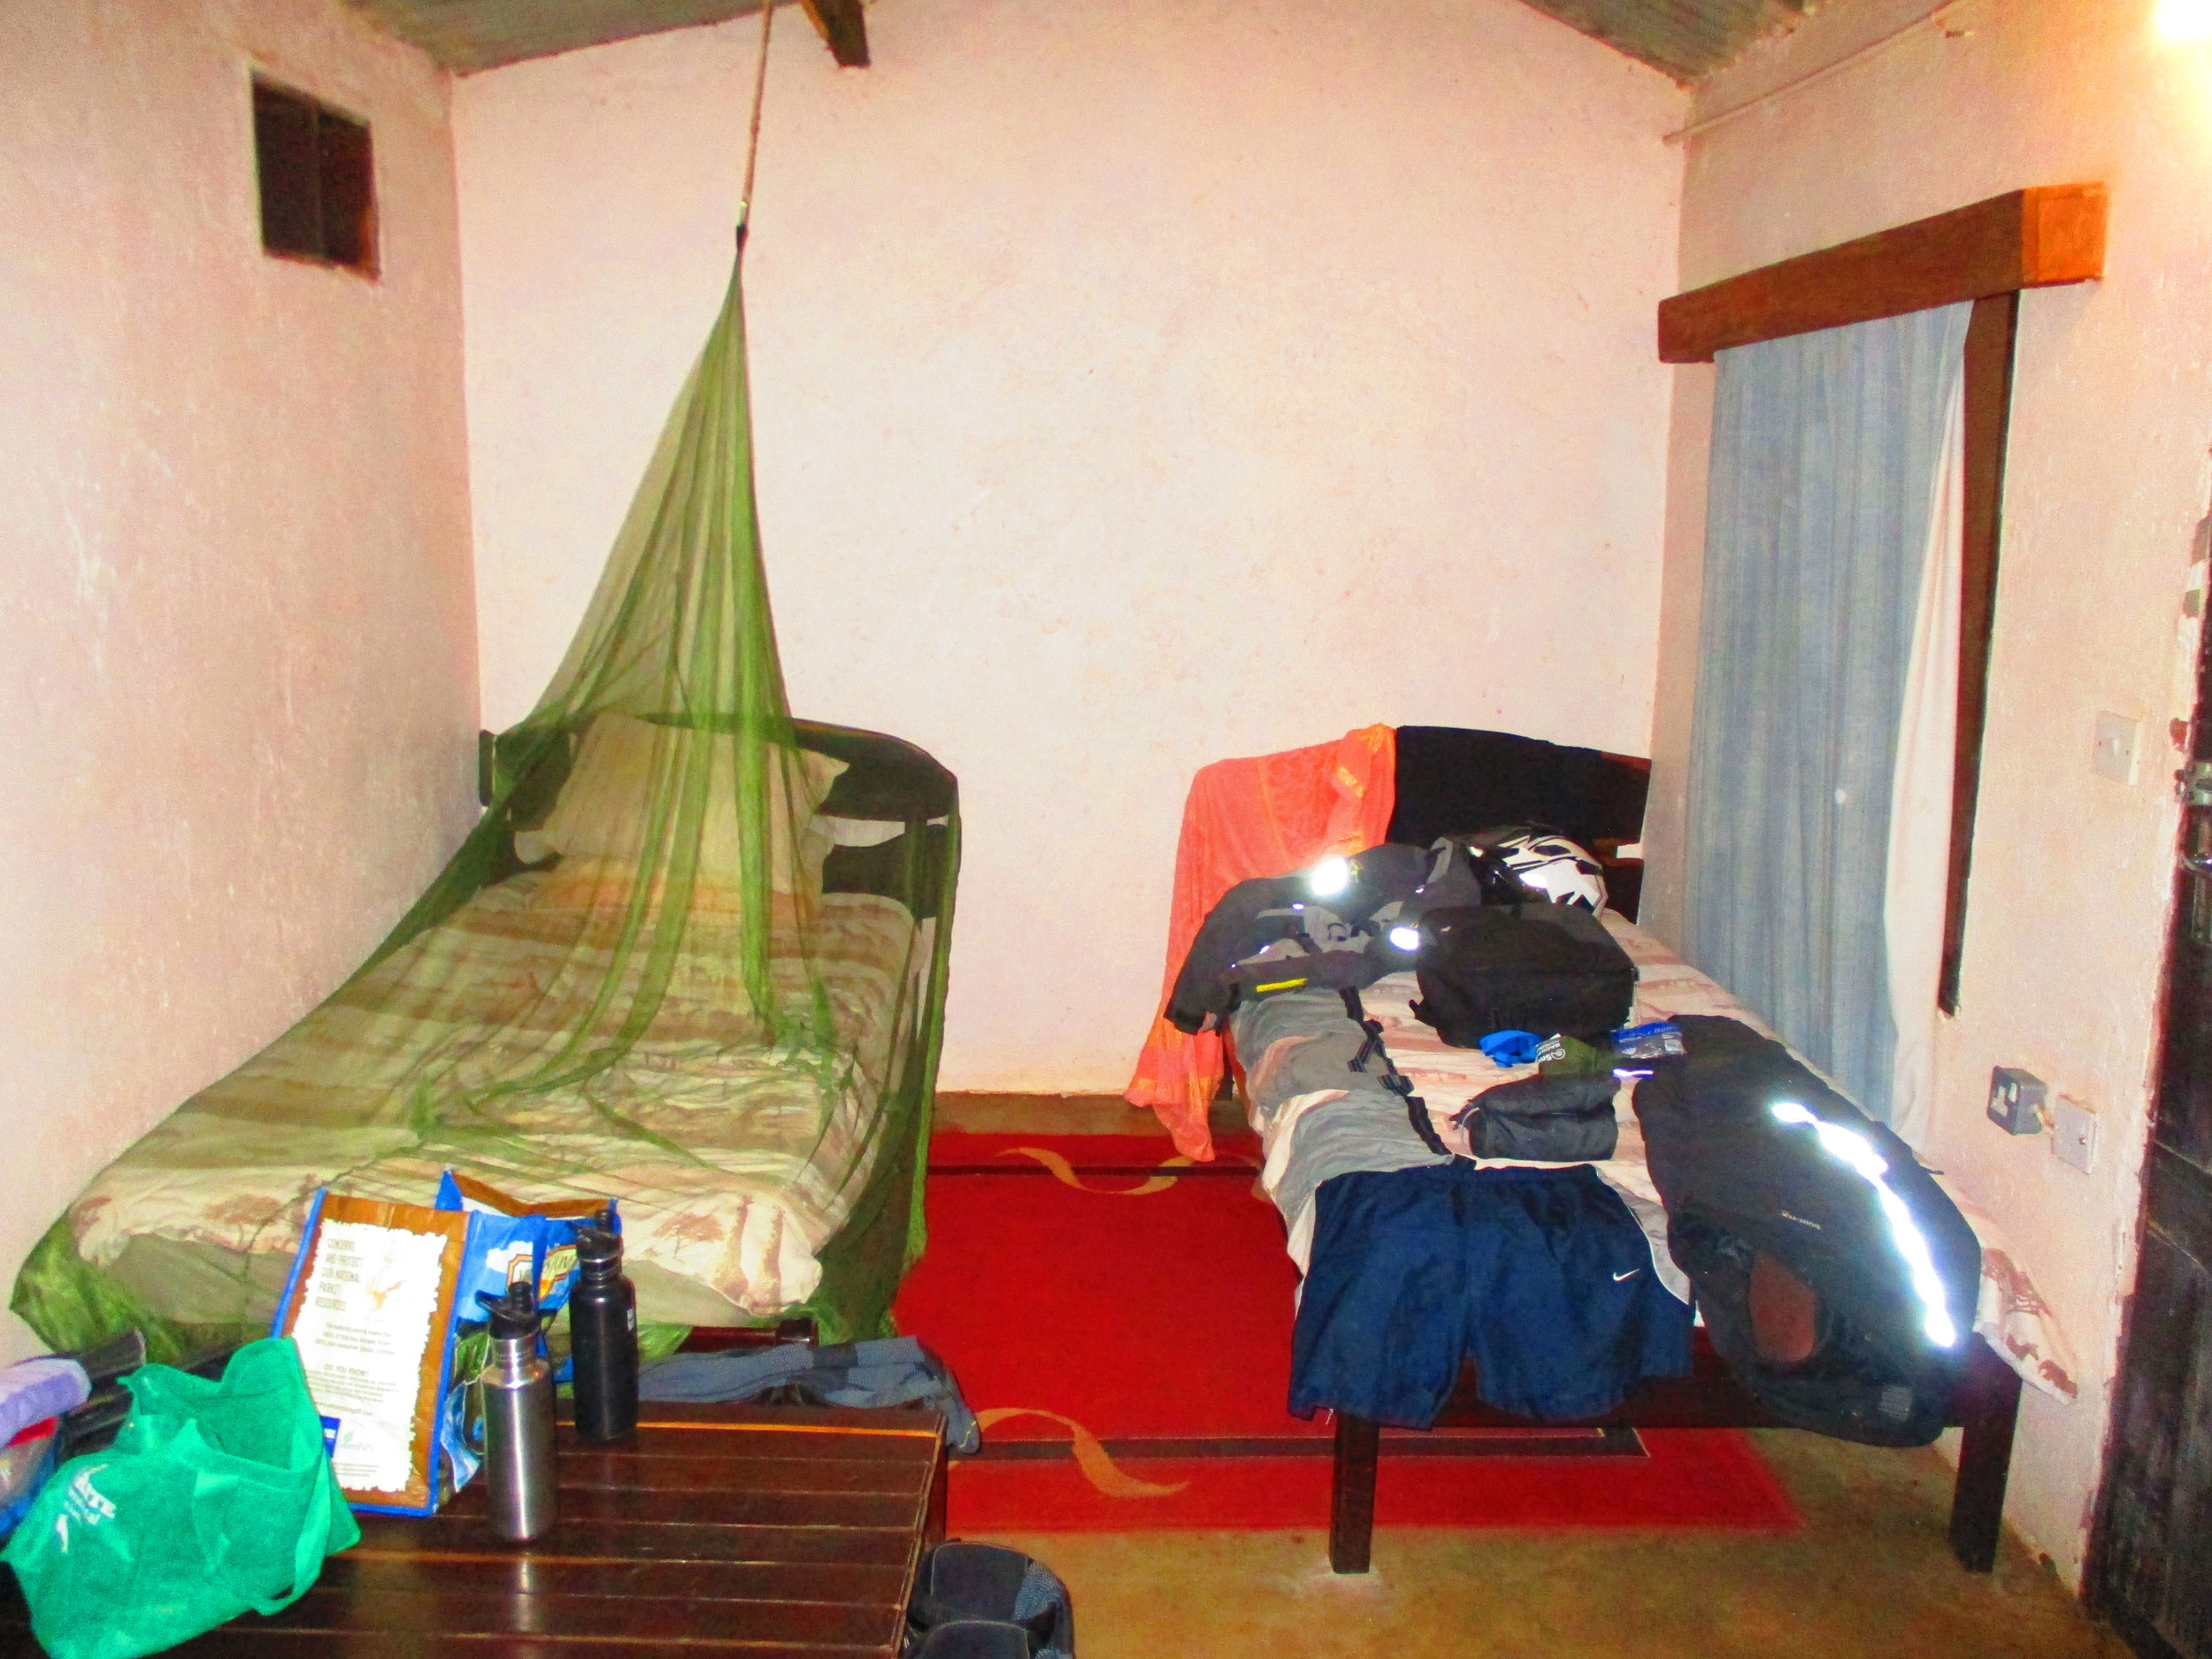 An impression of the 'concrete cell' type accomodation. BYO Mozzie net.